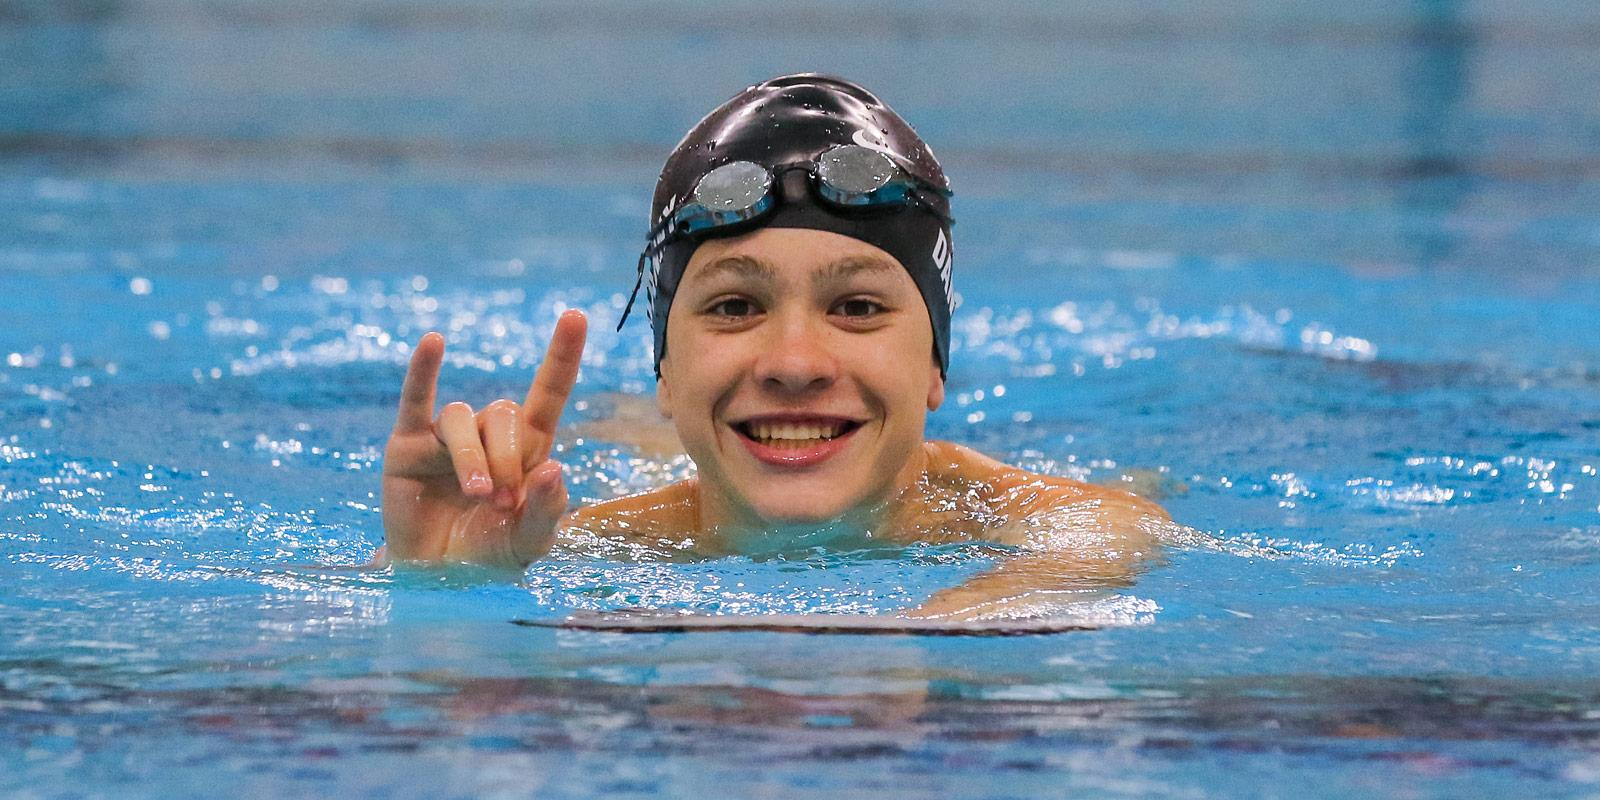 A young swimmer shows his Longhorn pride